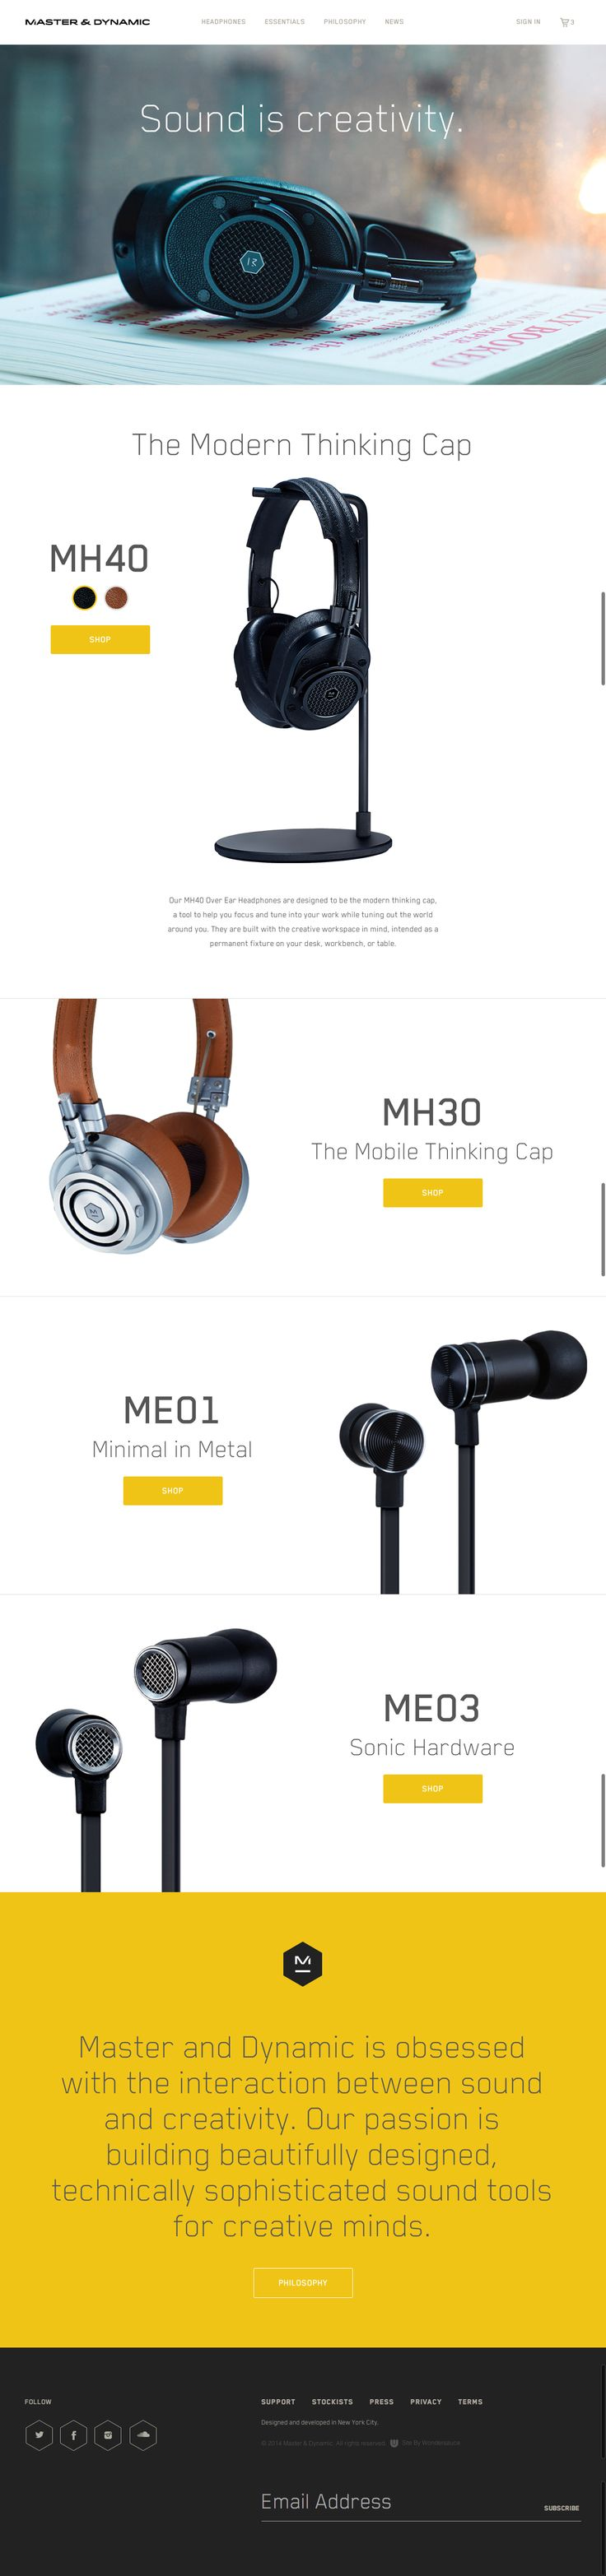 Premium headphones at Master & Dynamic designed to use at your workspace.